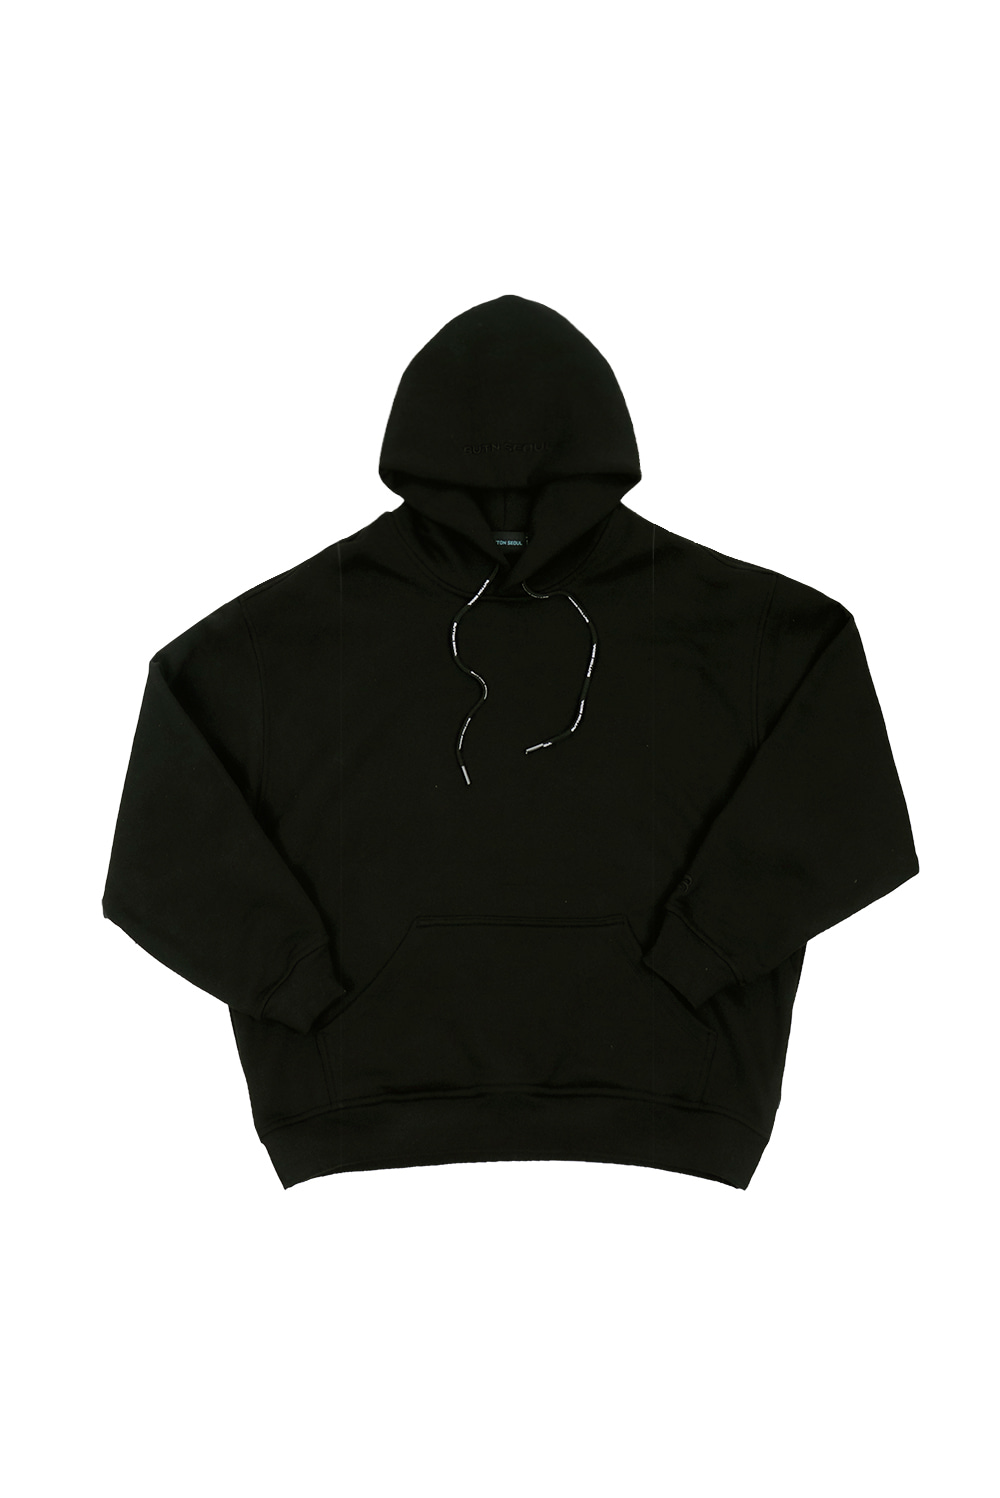 OverSize Heavy Hood (Black)